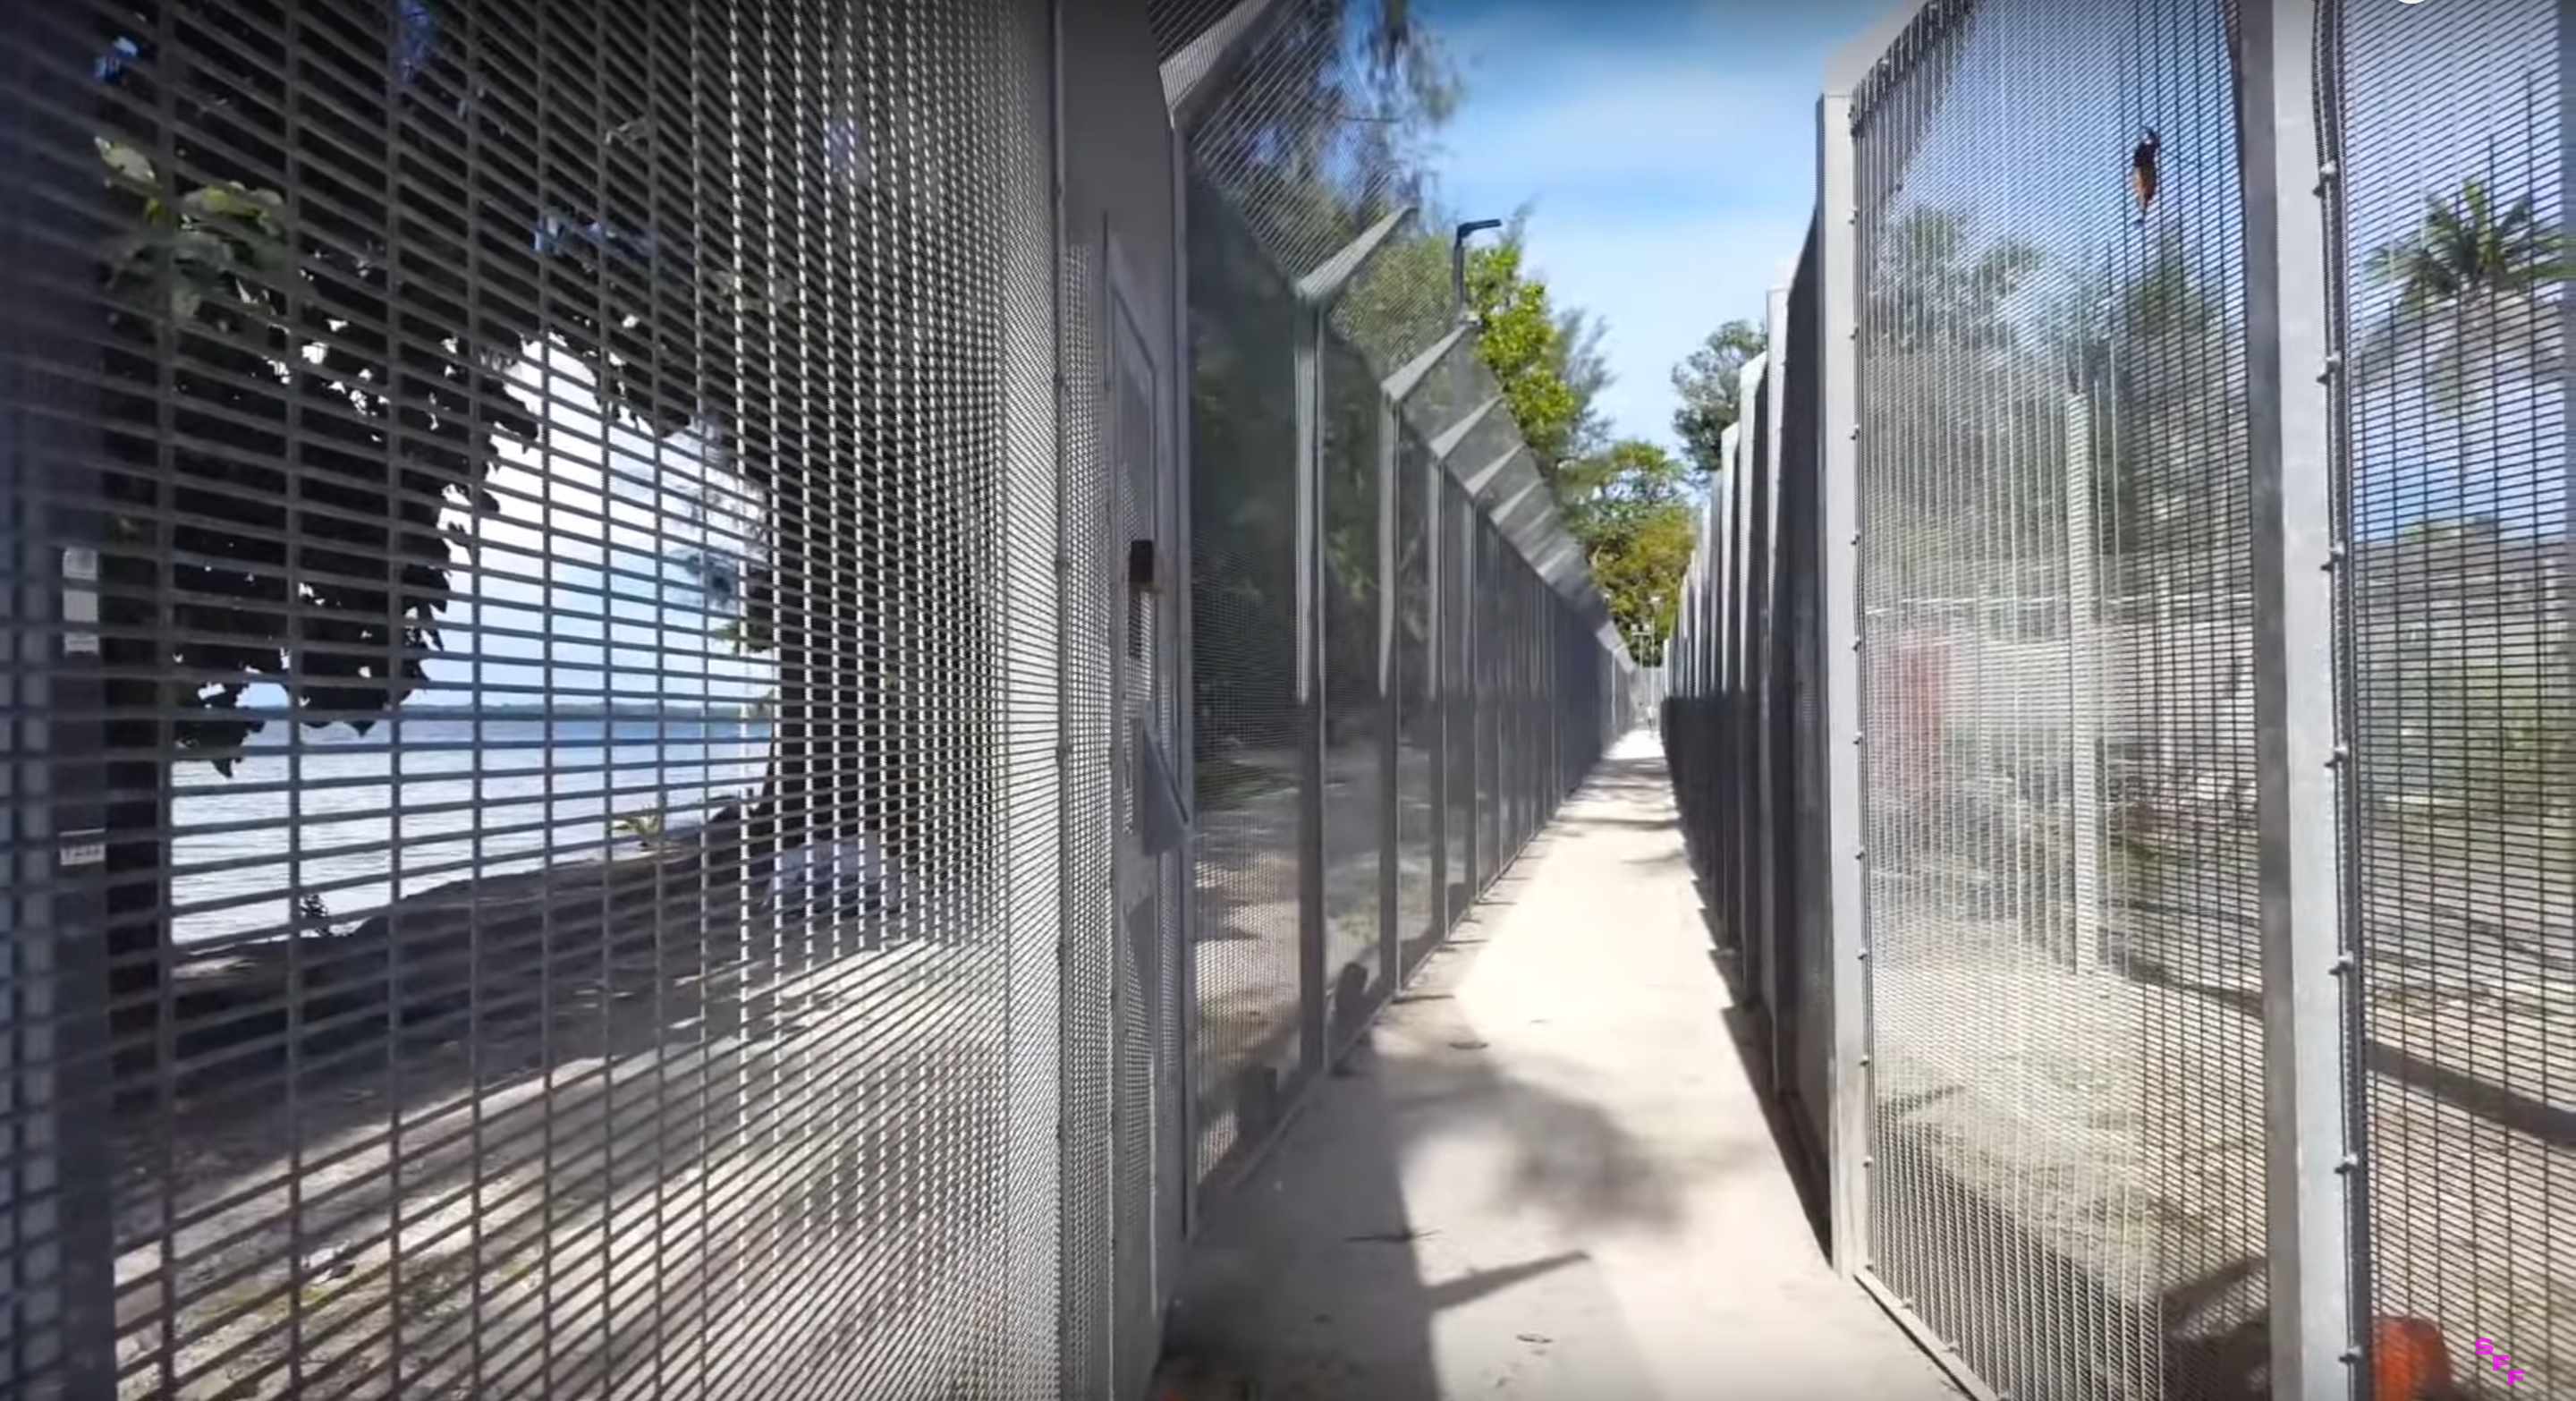 <p>Arash Kamali Sarvestani and Behrouz Boochani, <em>Chauka, Please Tell Us The Time</em> (2017), video still, depicting the fence at Manus Regional Processing Centre, before its closure and detainees were moved to other facilities on the island.</p>